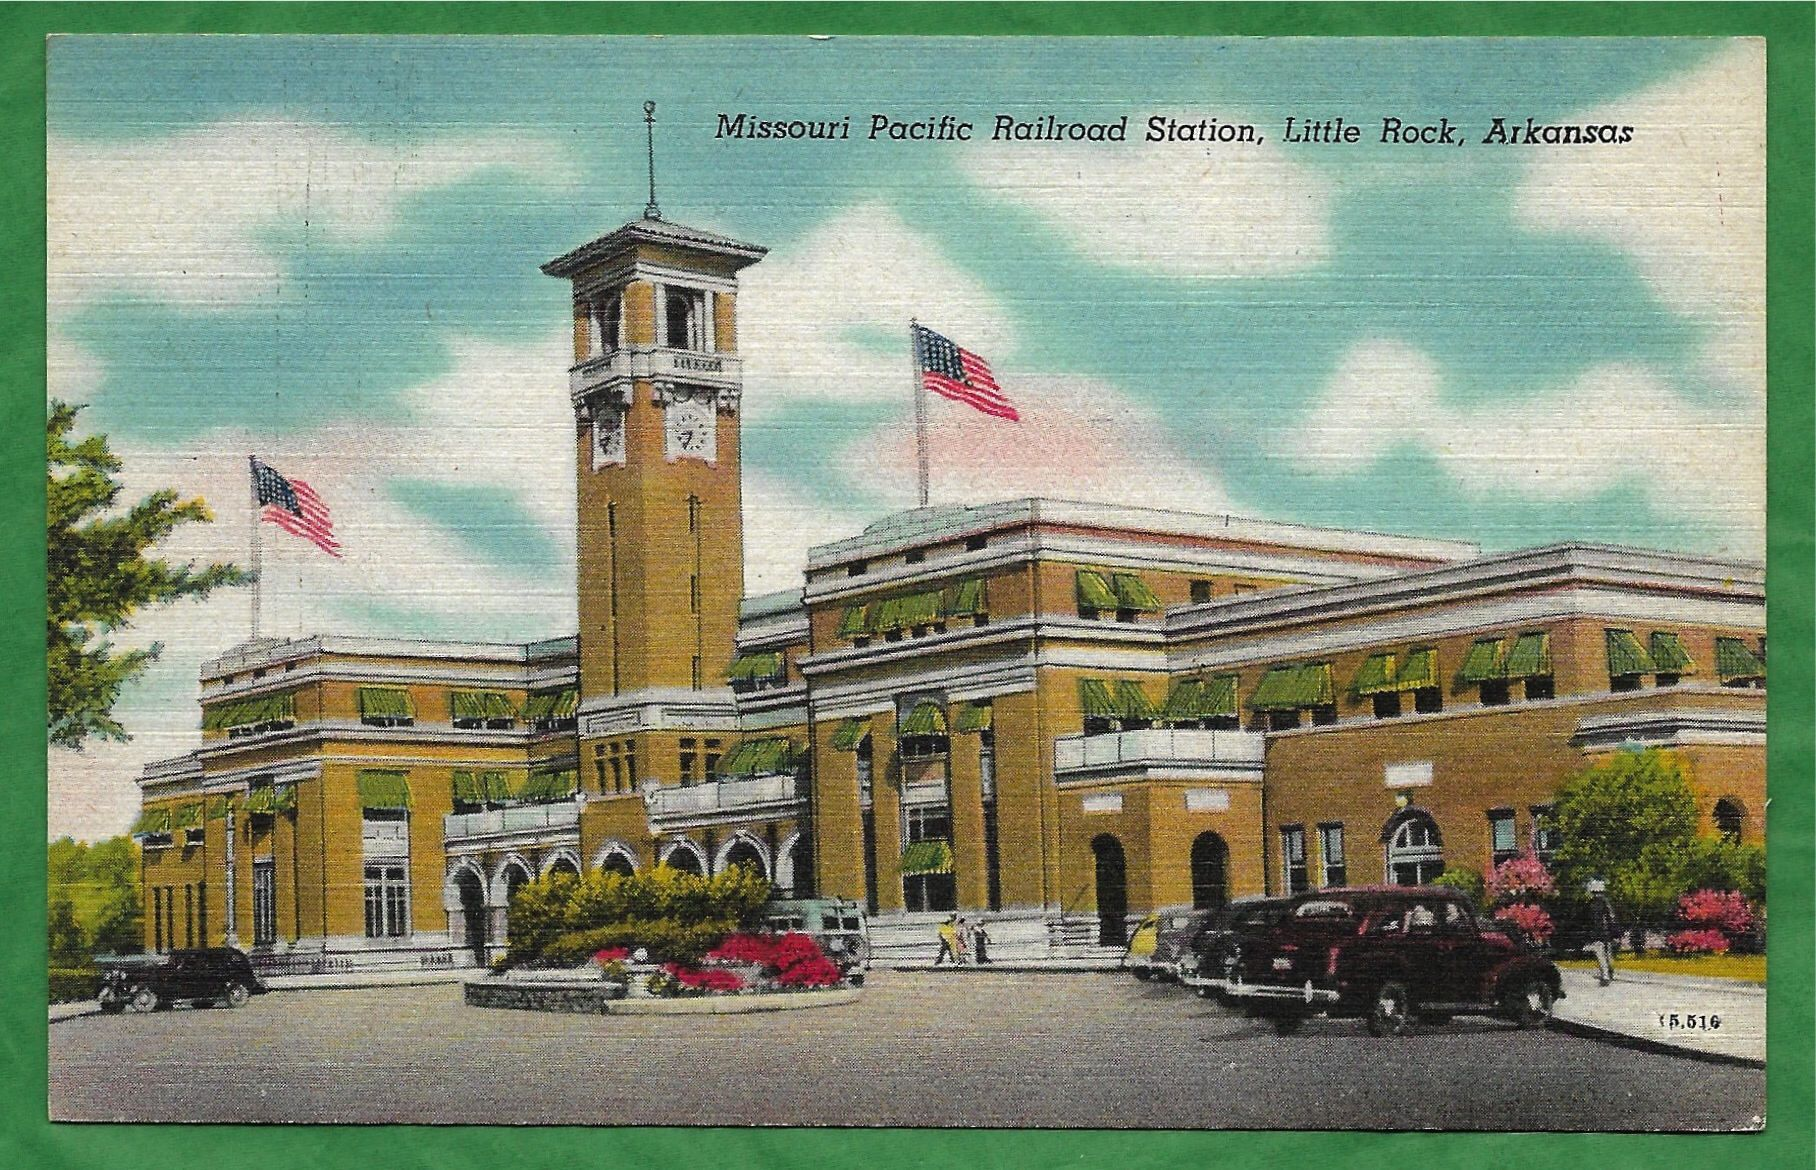 Vintage Linen Postcard - Missouri Pacific RR Station Also Known as Mopac Station in Little Rock, Arkansas  (3133) by TheToadsHouse on Etsy https://www.etsy.com/listing/575475985/vintage-linen-postcard-missouri-pacific